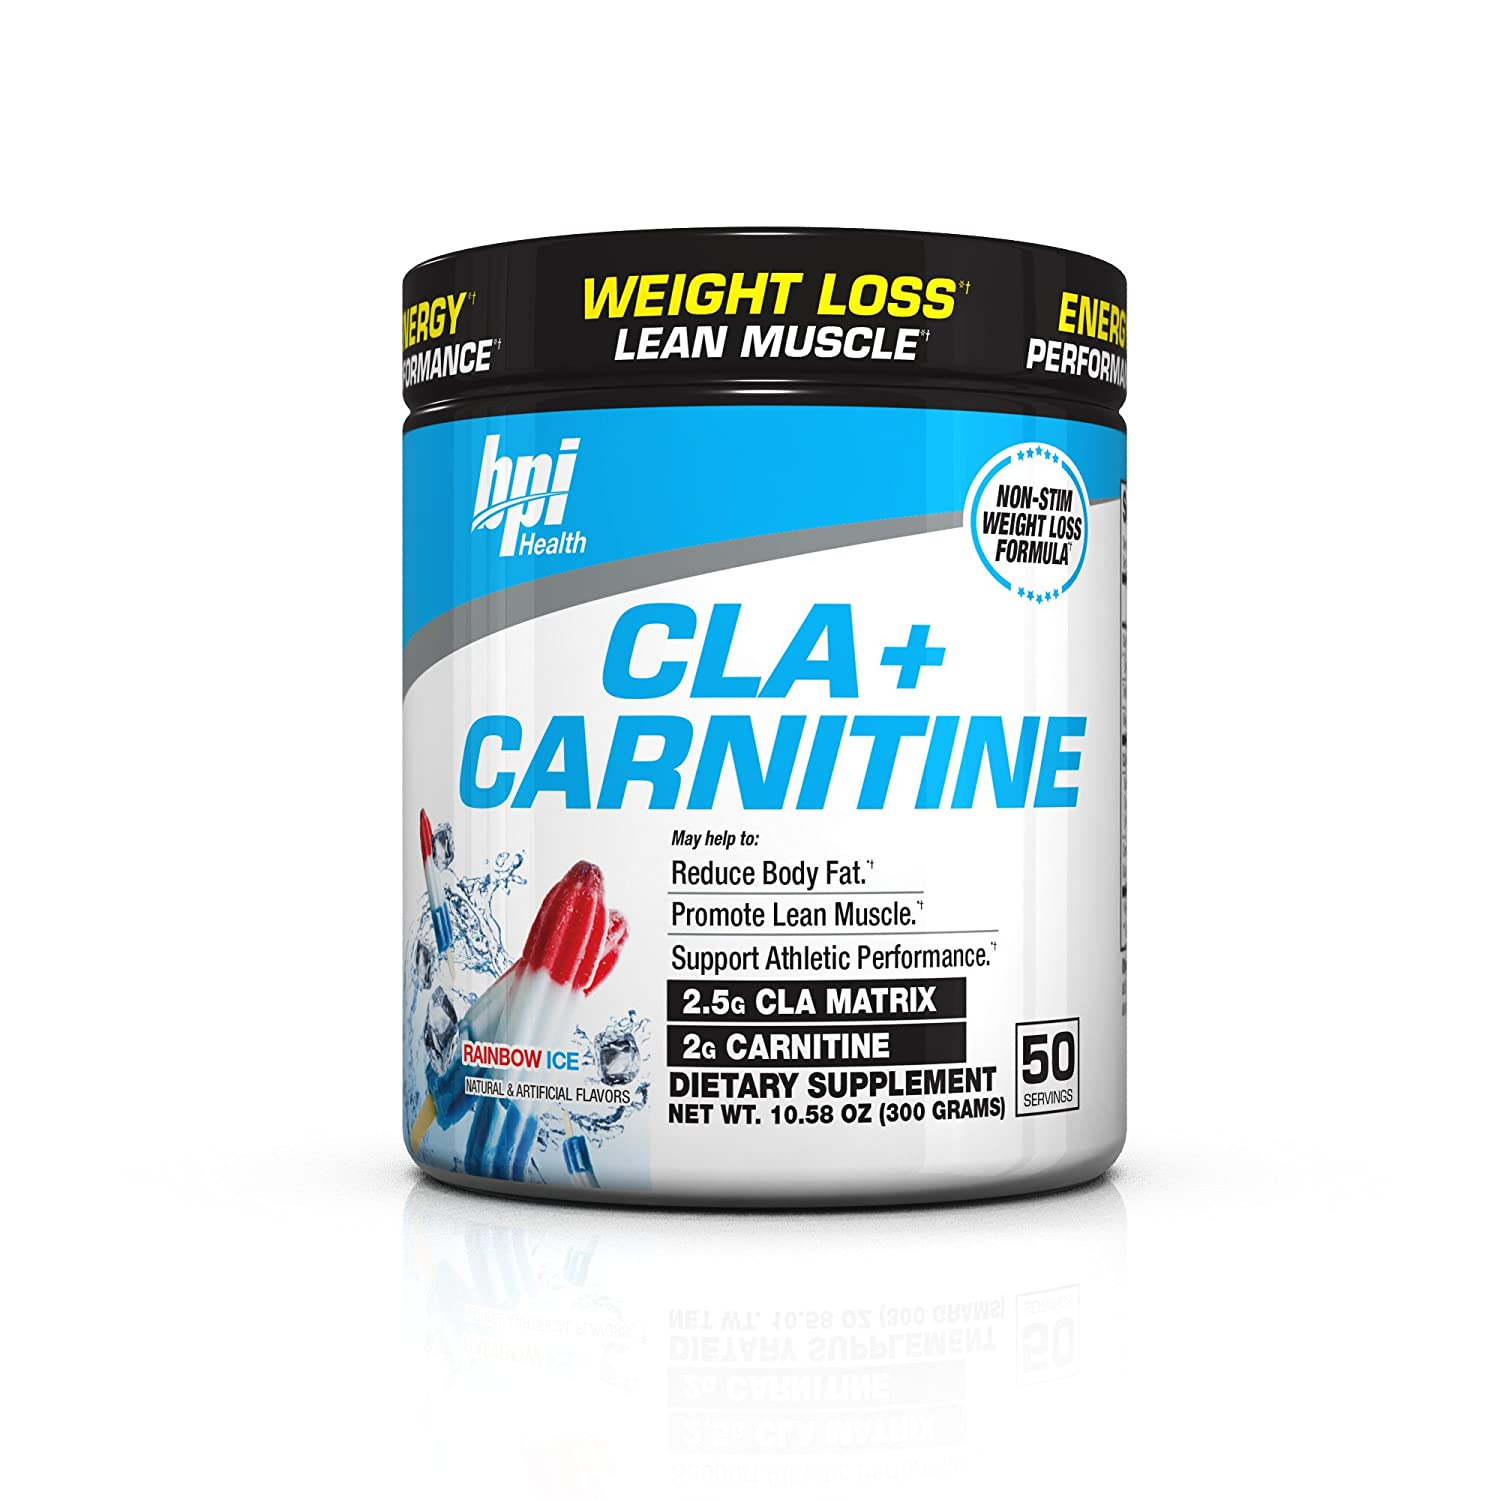 Bpi Sports Cla + Carnitine Non Stimulant Weight Loss Supplement Powder, Rainbow Ice, 11.29 Ounce by Bpi Sports